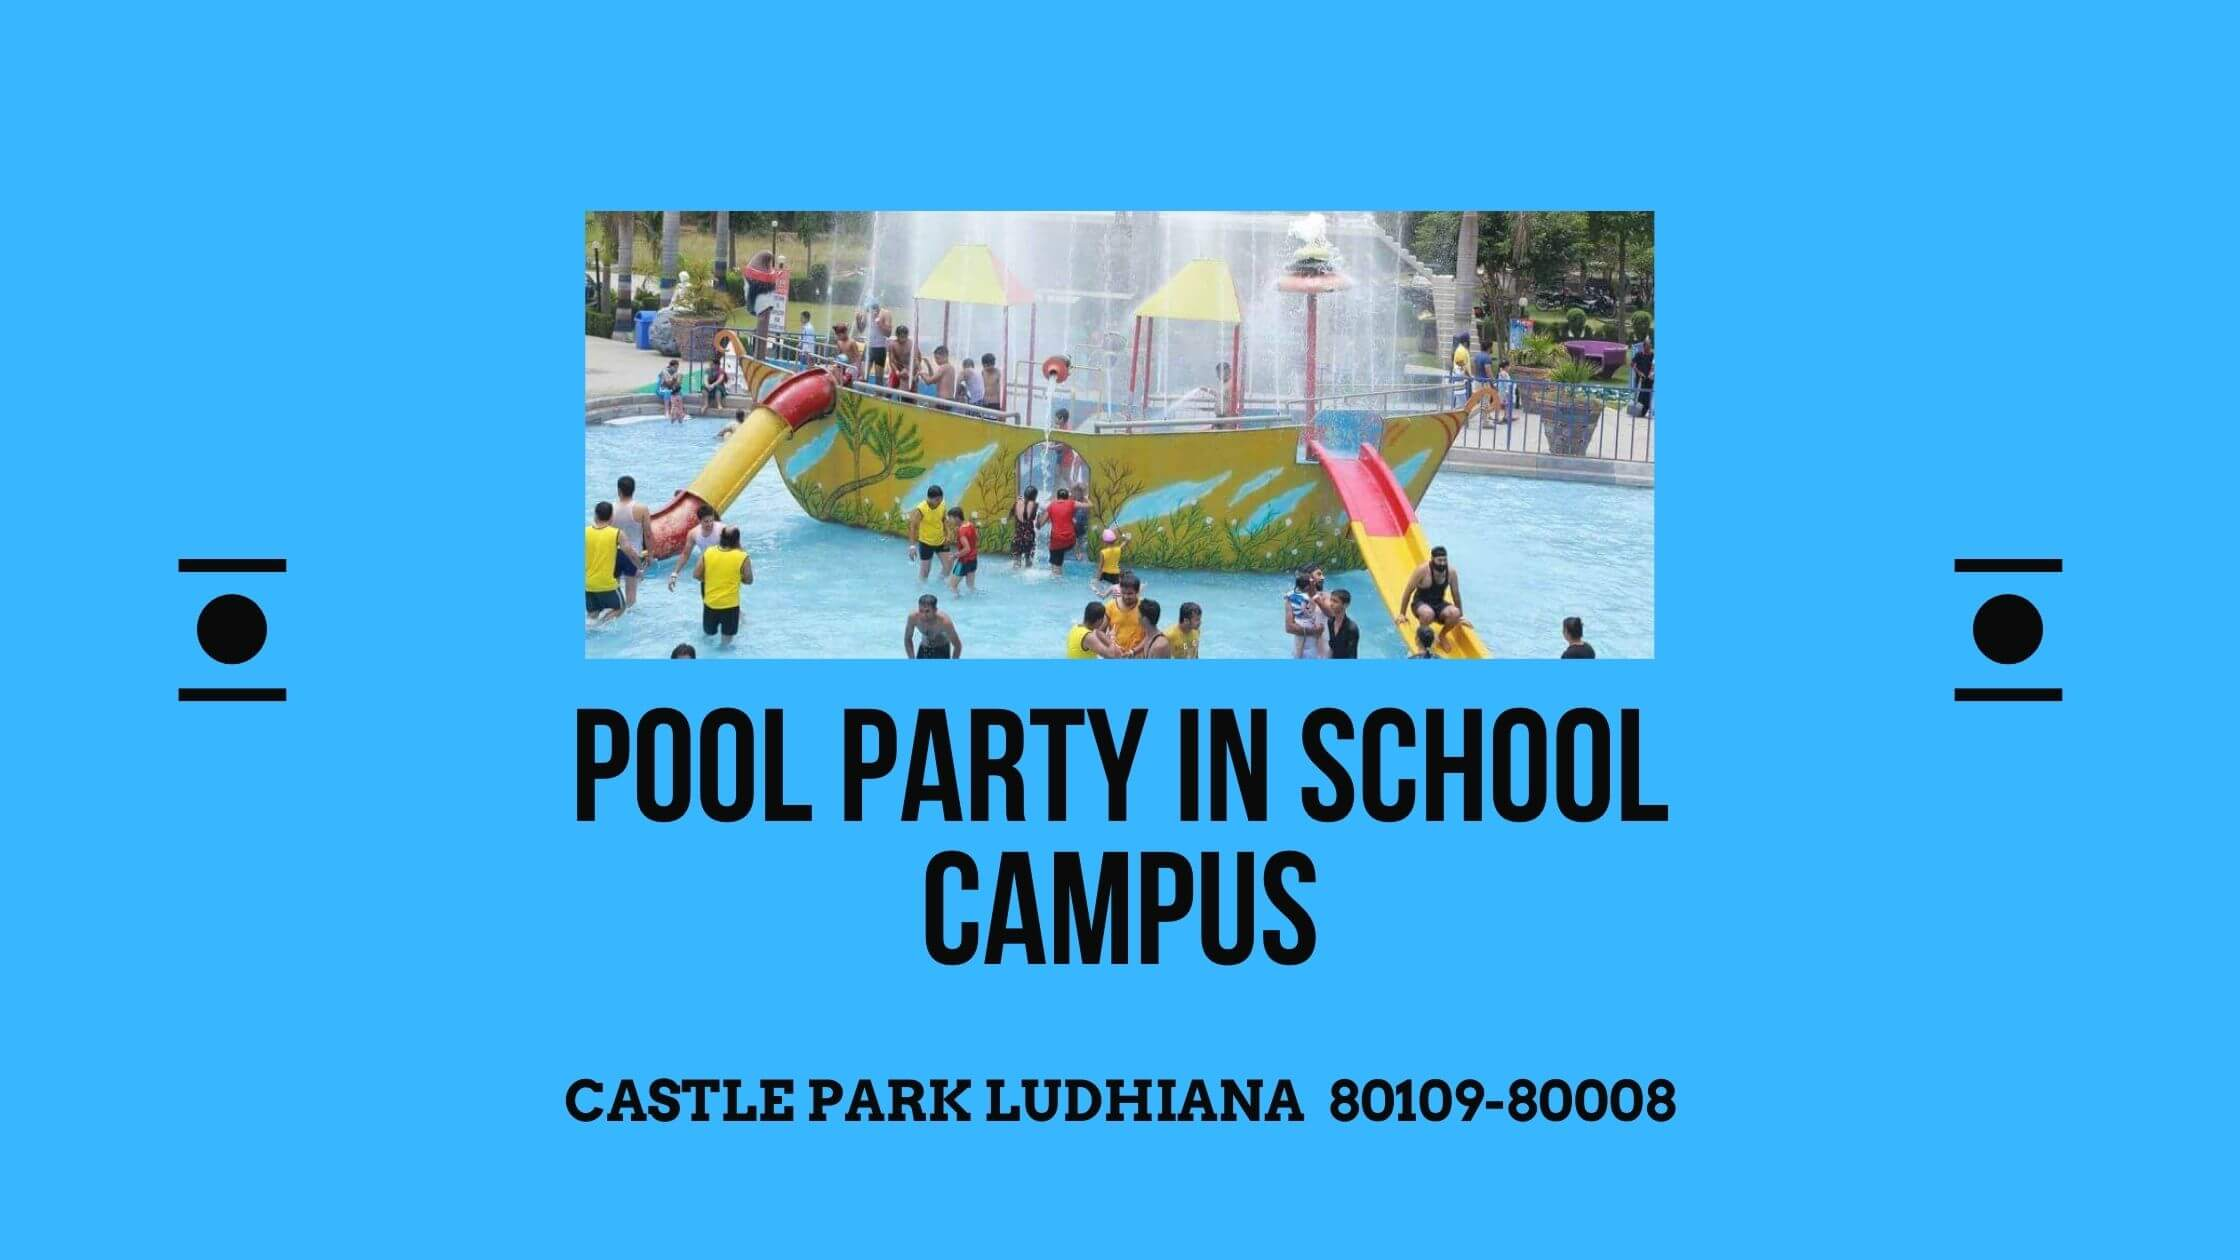 POOL PARTY IN SCHOOL CAMPUS